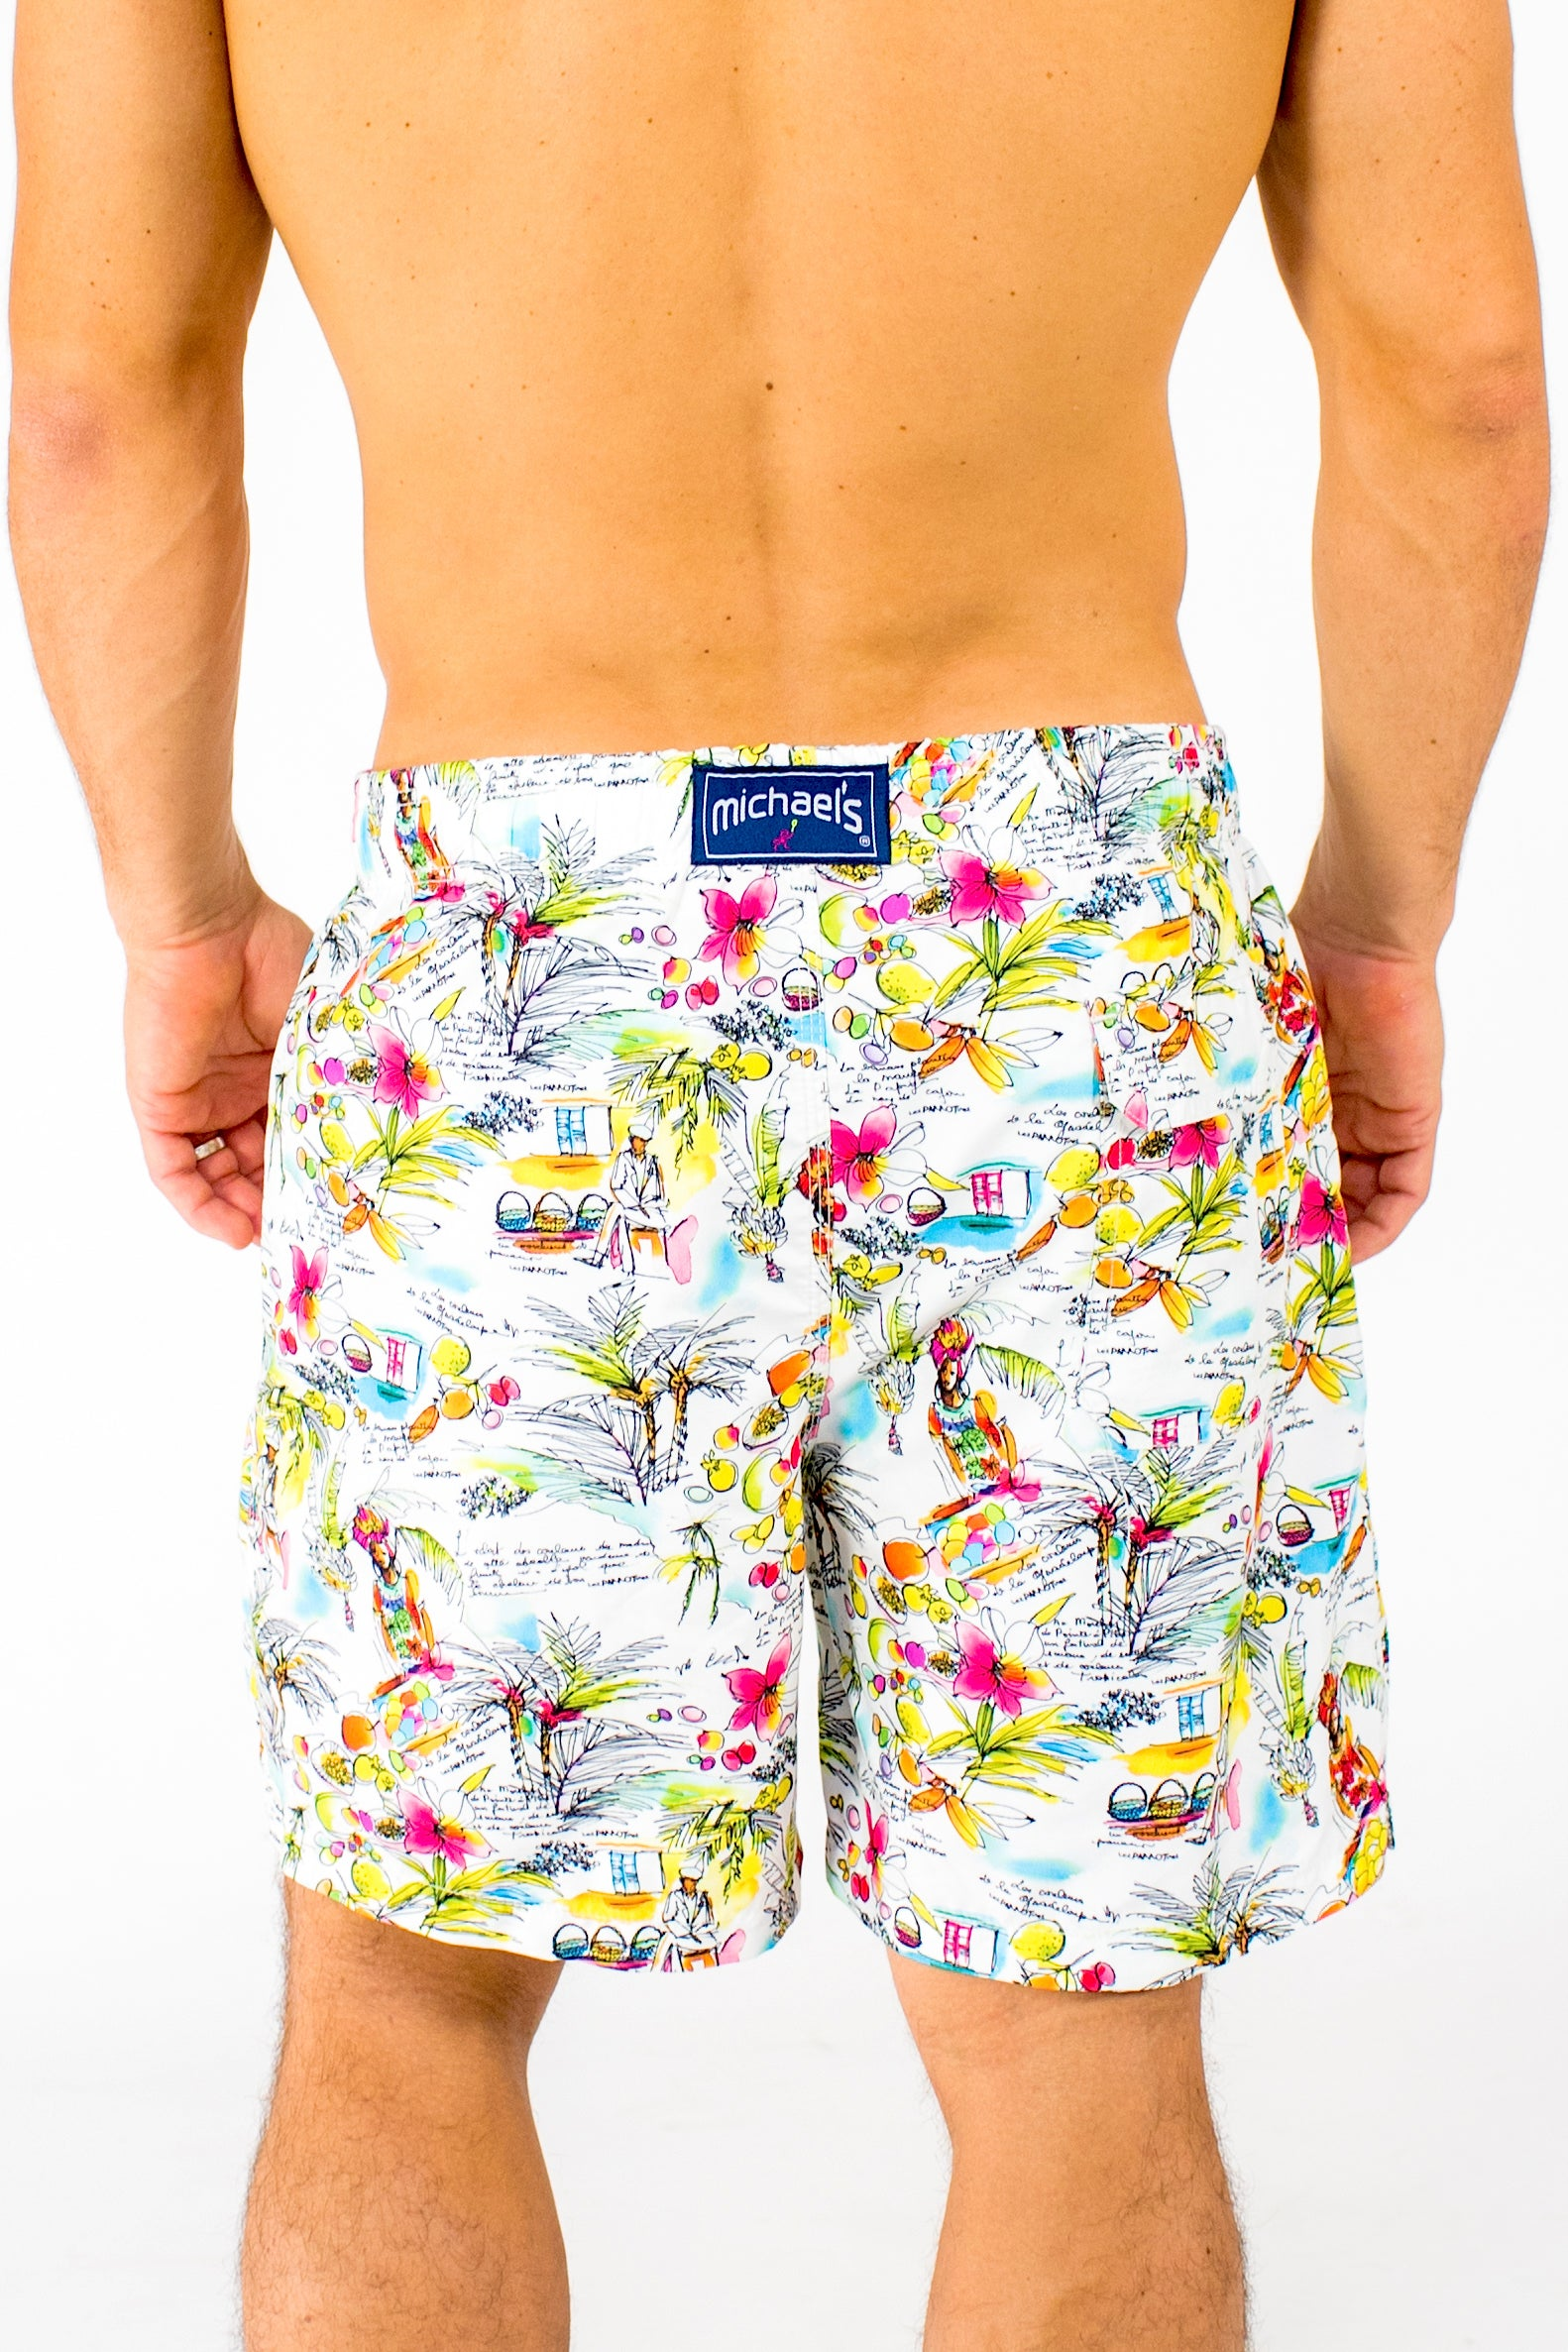 3369b08f88 2019 Men's Swim Trunks With Cyclist Liner - Michael's Swimwear